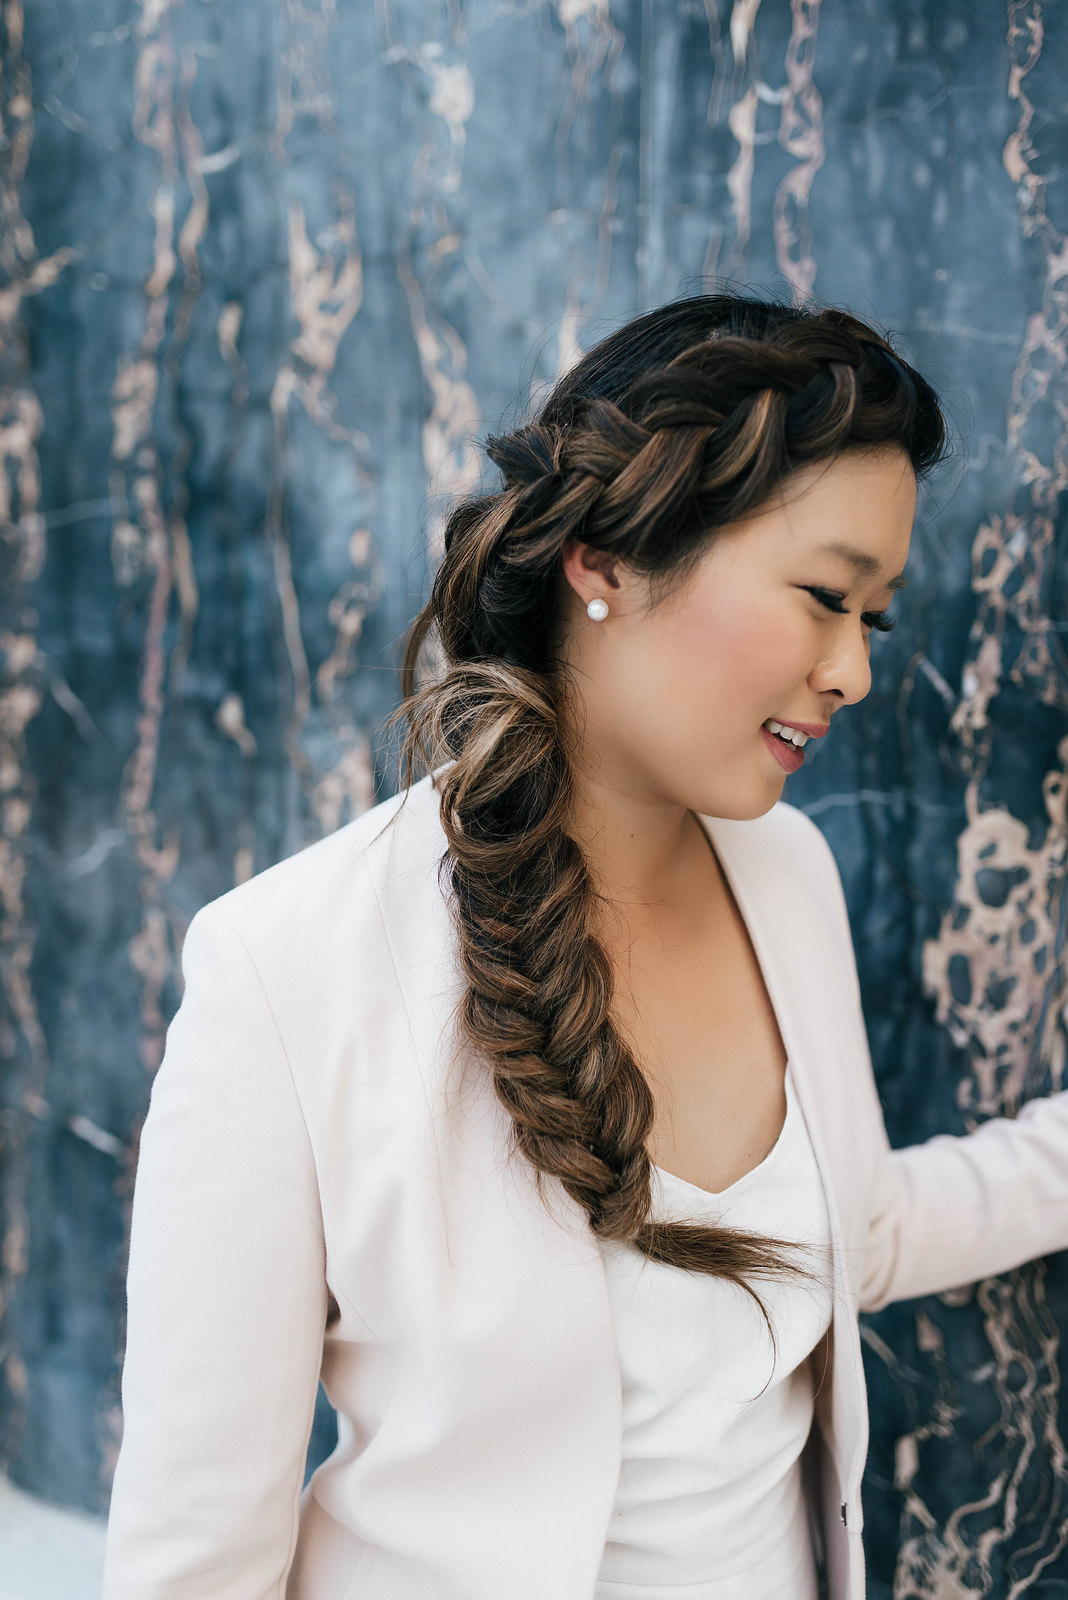 Braided hairstyle by Tanglez Hair and Makeup